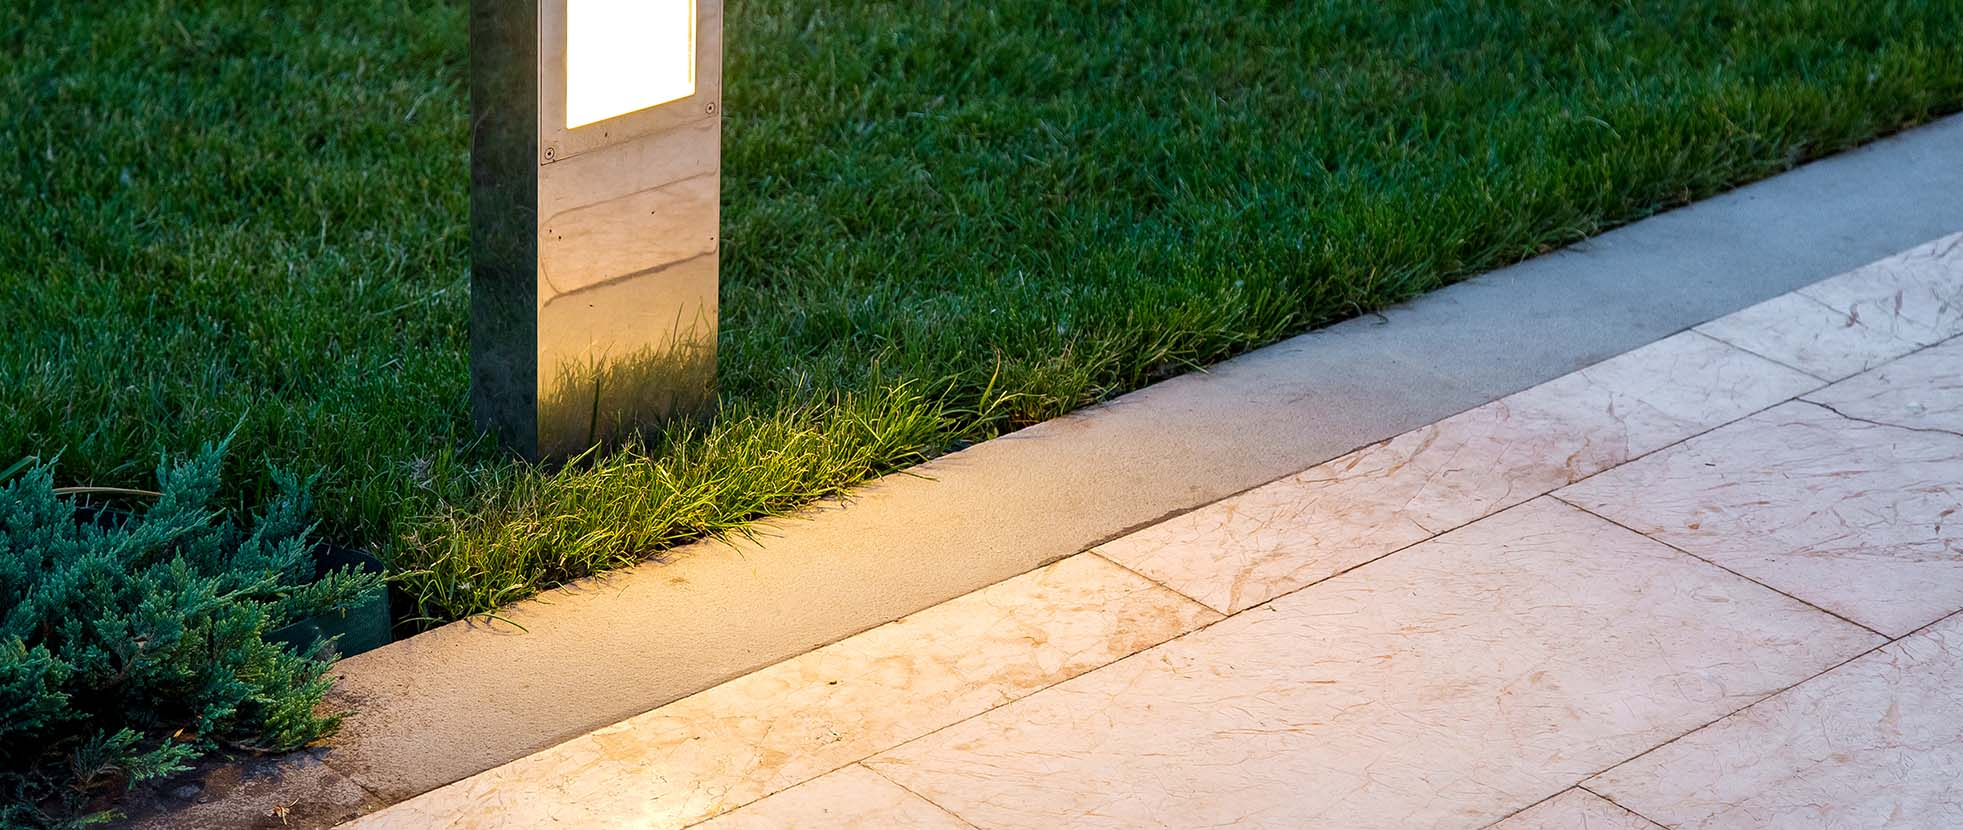 Is Your Driveway Looking Worn-Out?